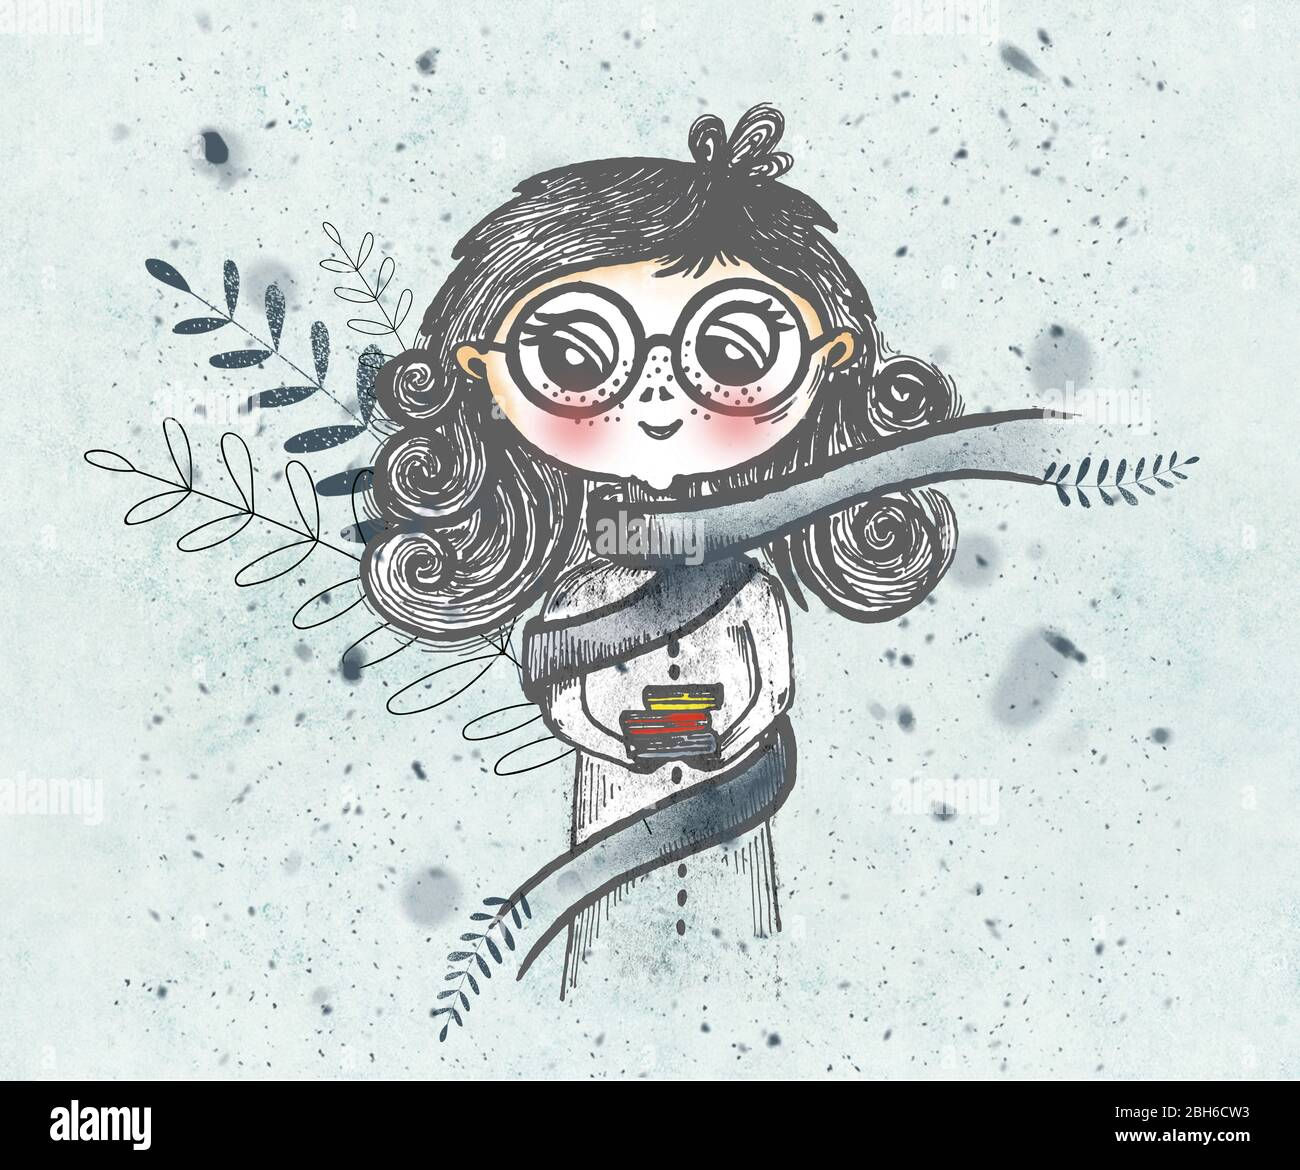 Cartoon Big Eyes High Resolution Stock Photography And Images Alamy